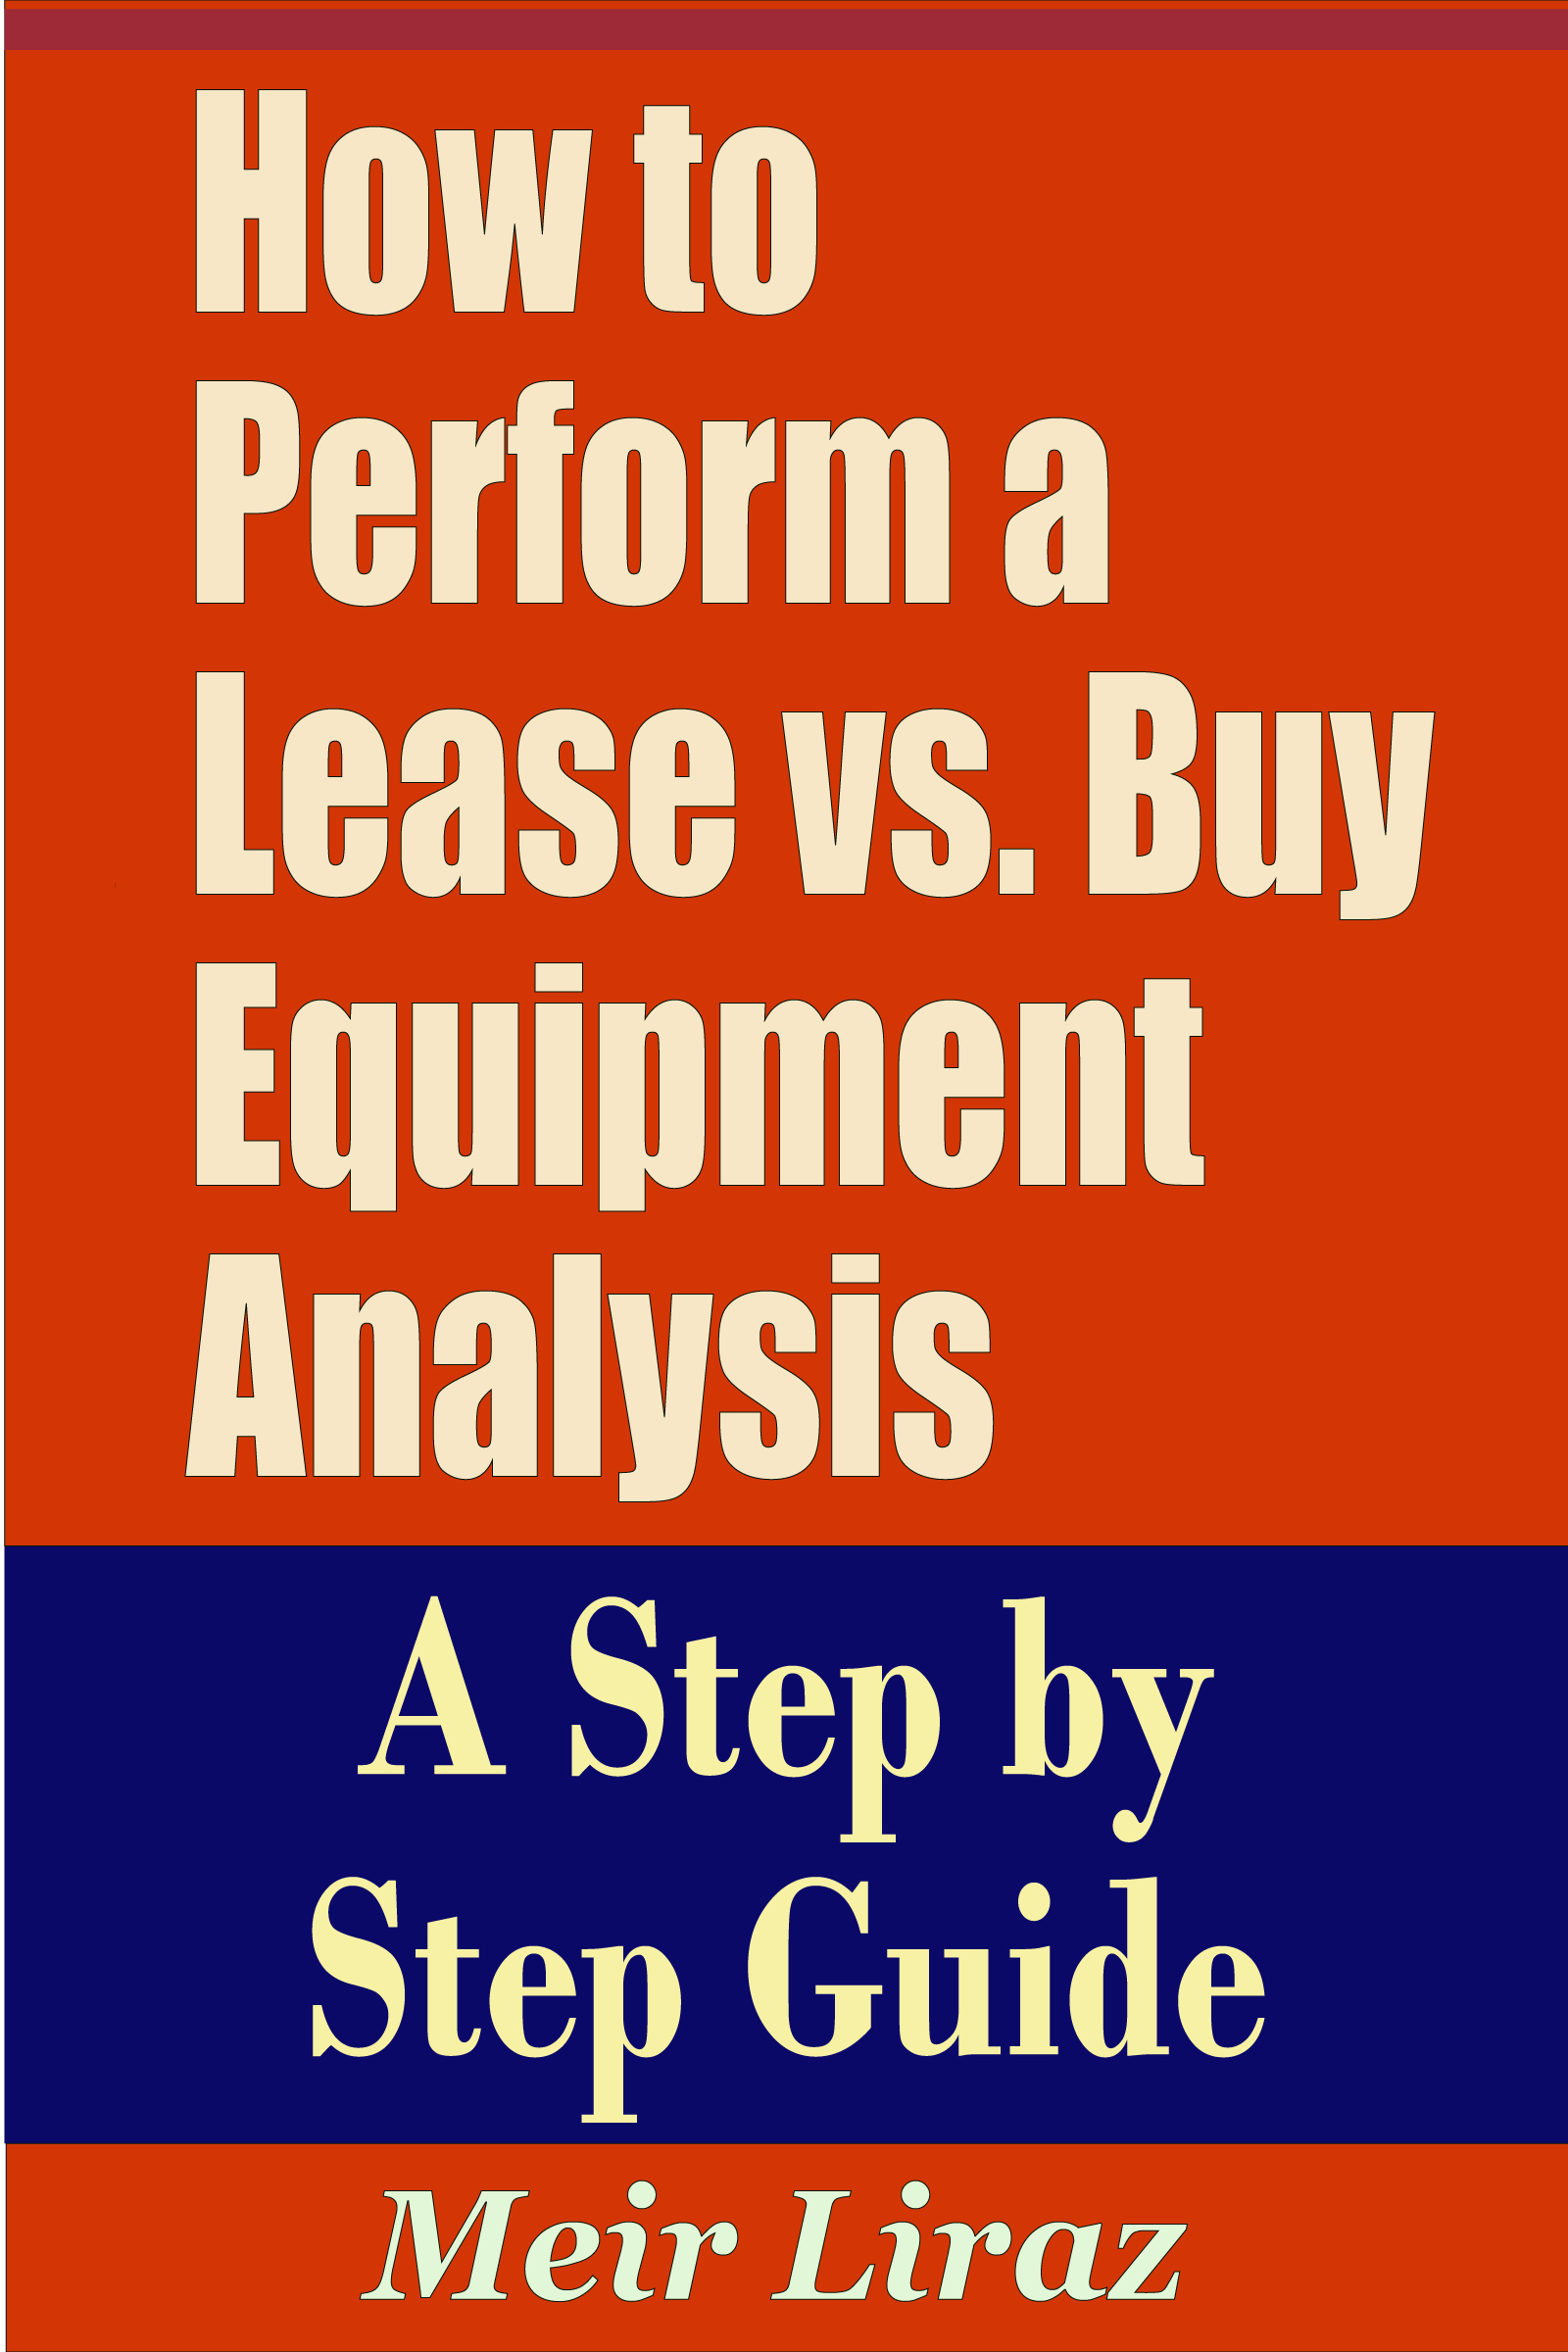 Meir Liraz - How to Perform a Lease vs. Buy Equipment Analysis - A Step by Step Guide